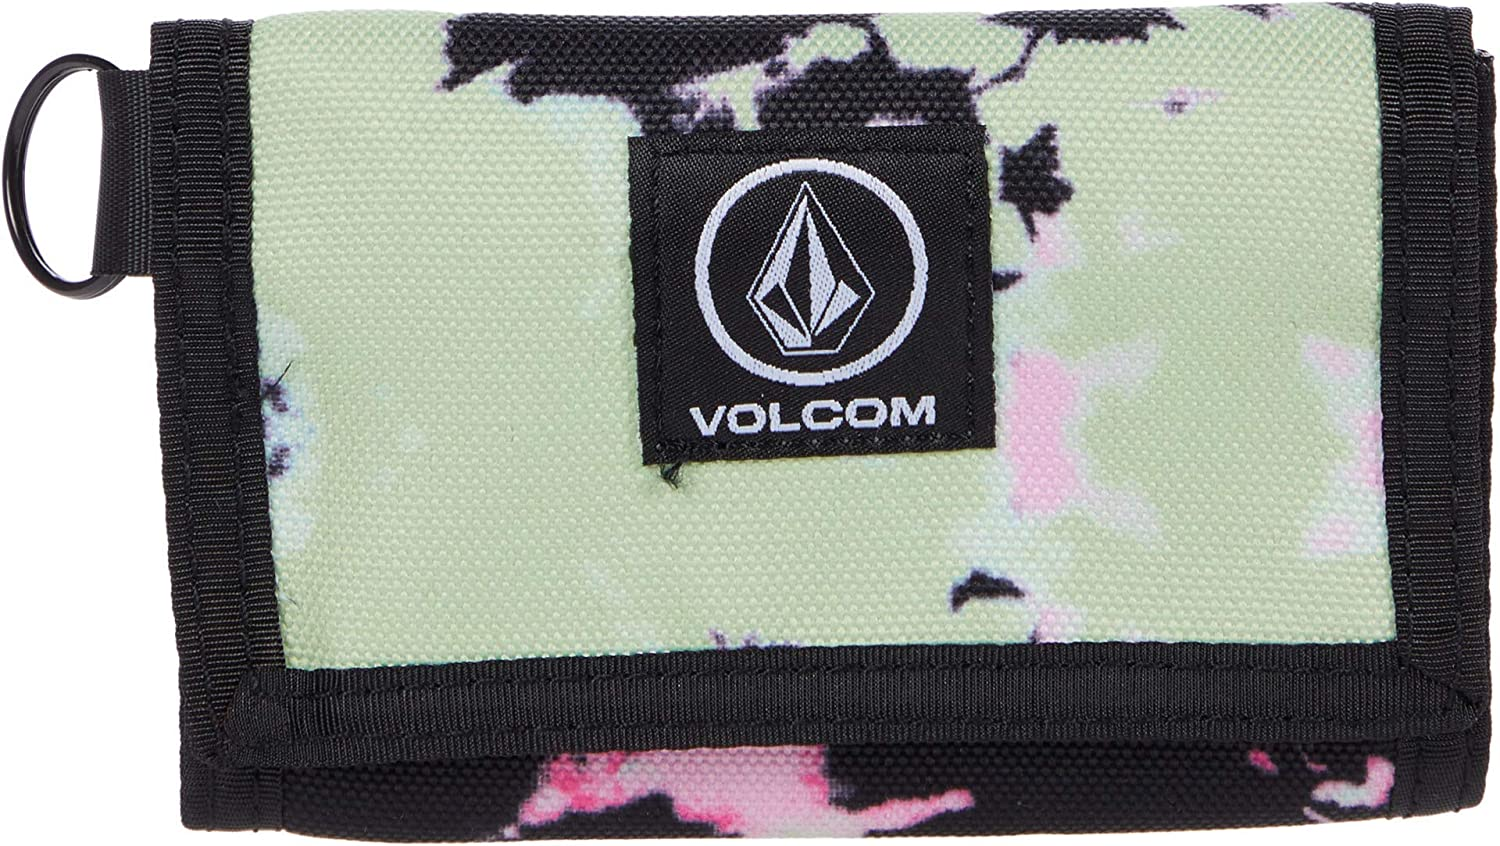 Volcom Men's Trifold Wallet, Multi, One Size: Clothing